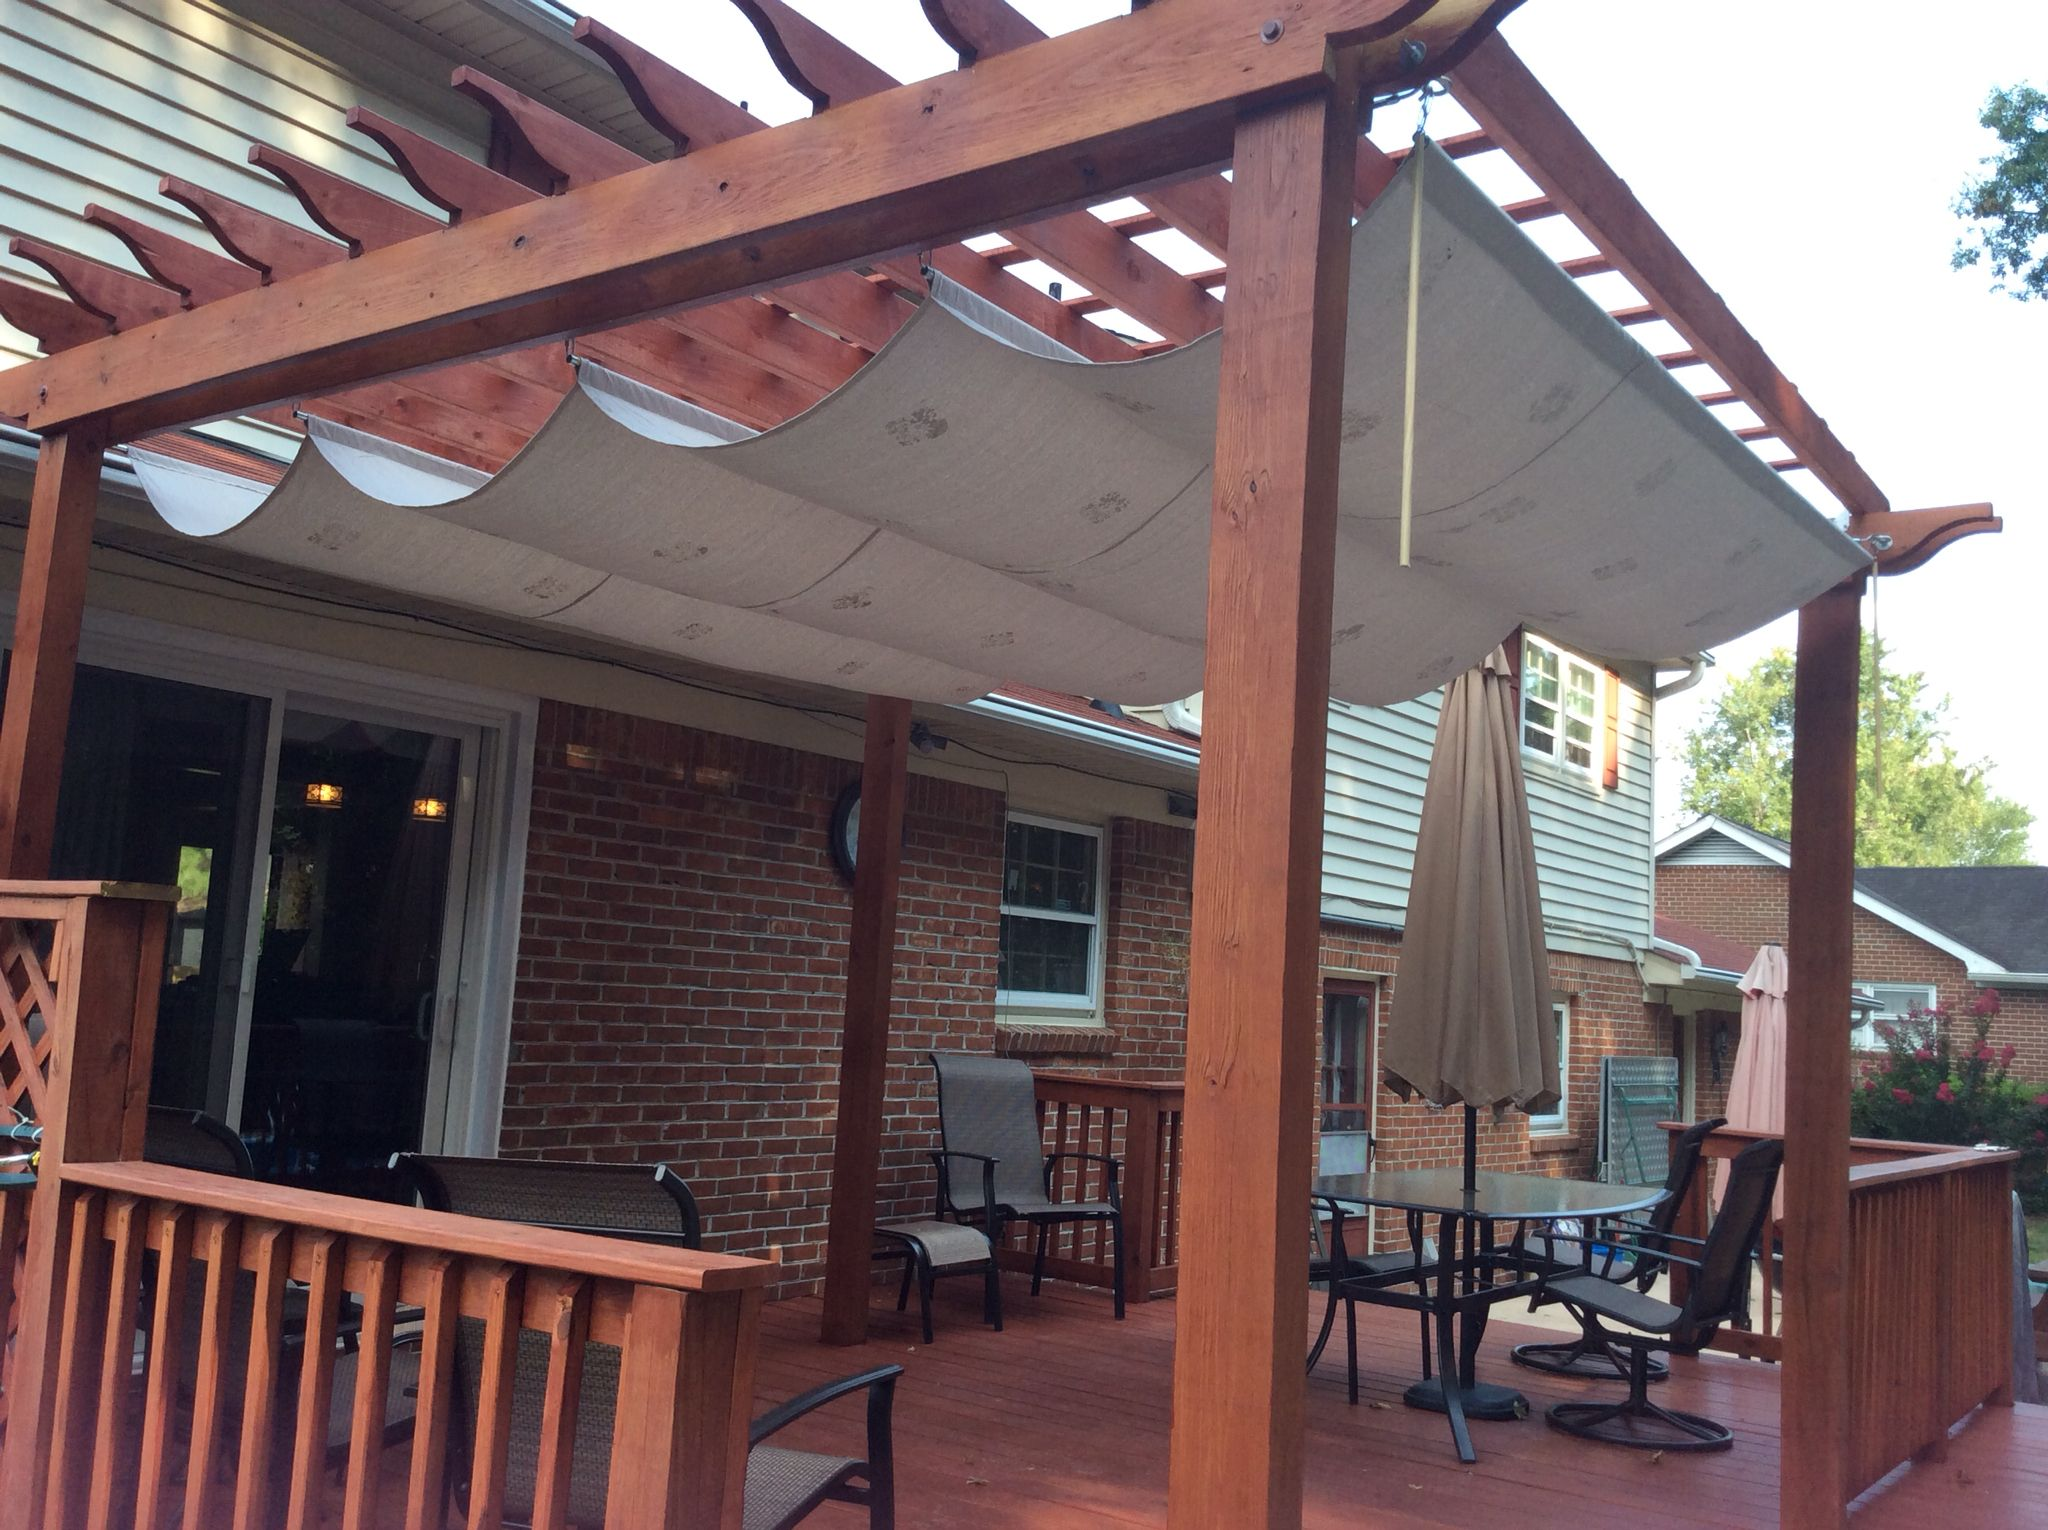 Pergola Shade. Made with a painters tarp from Home Depot